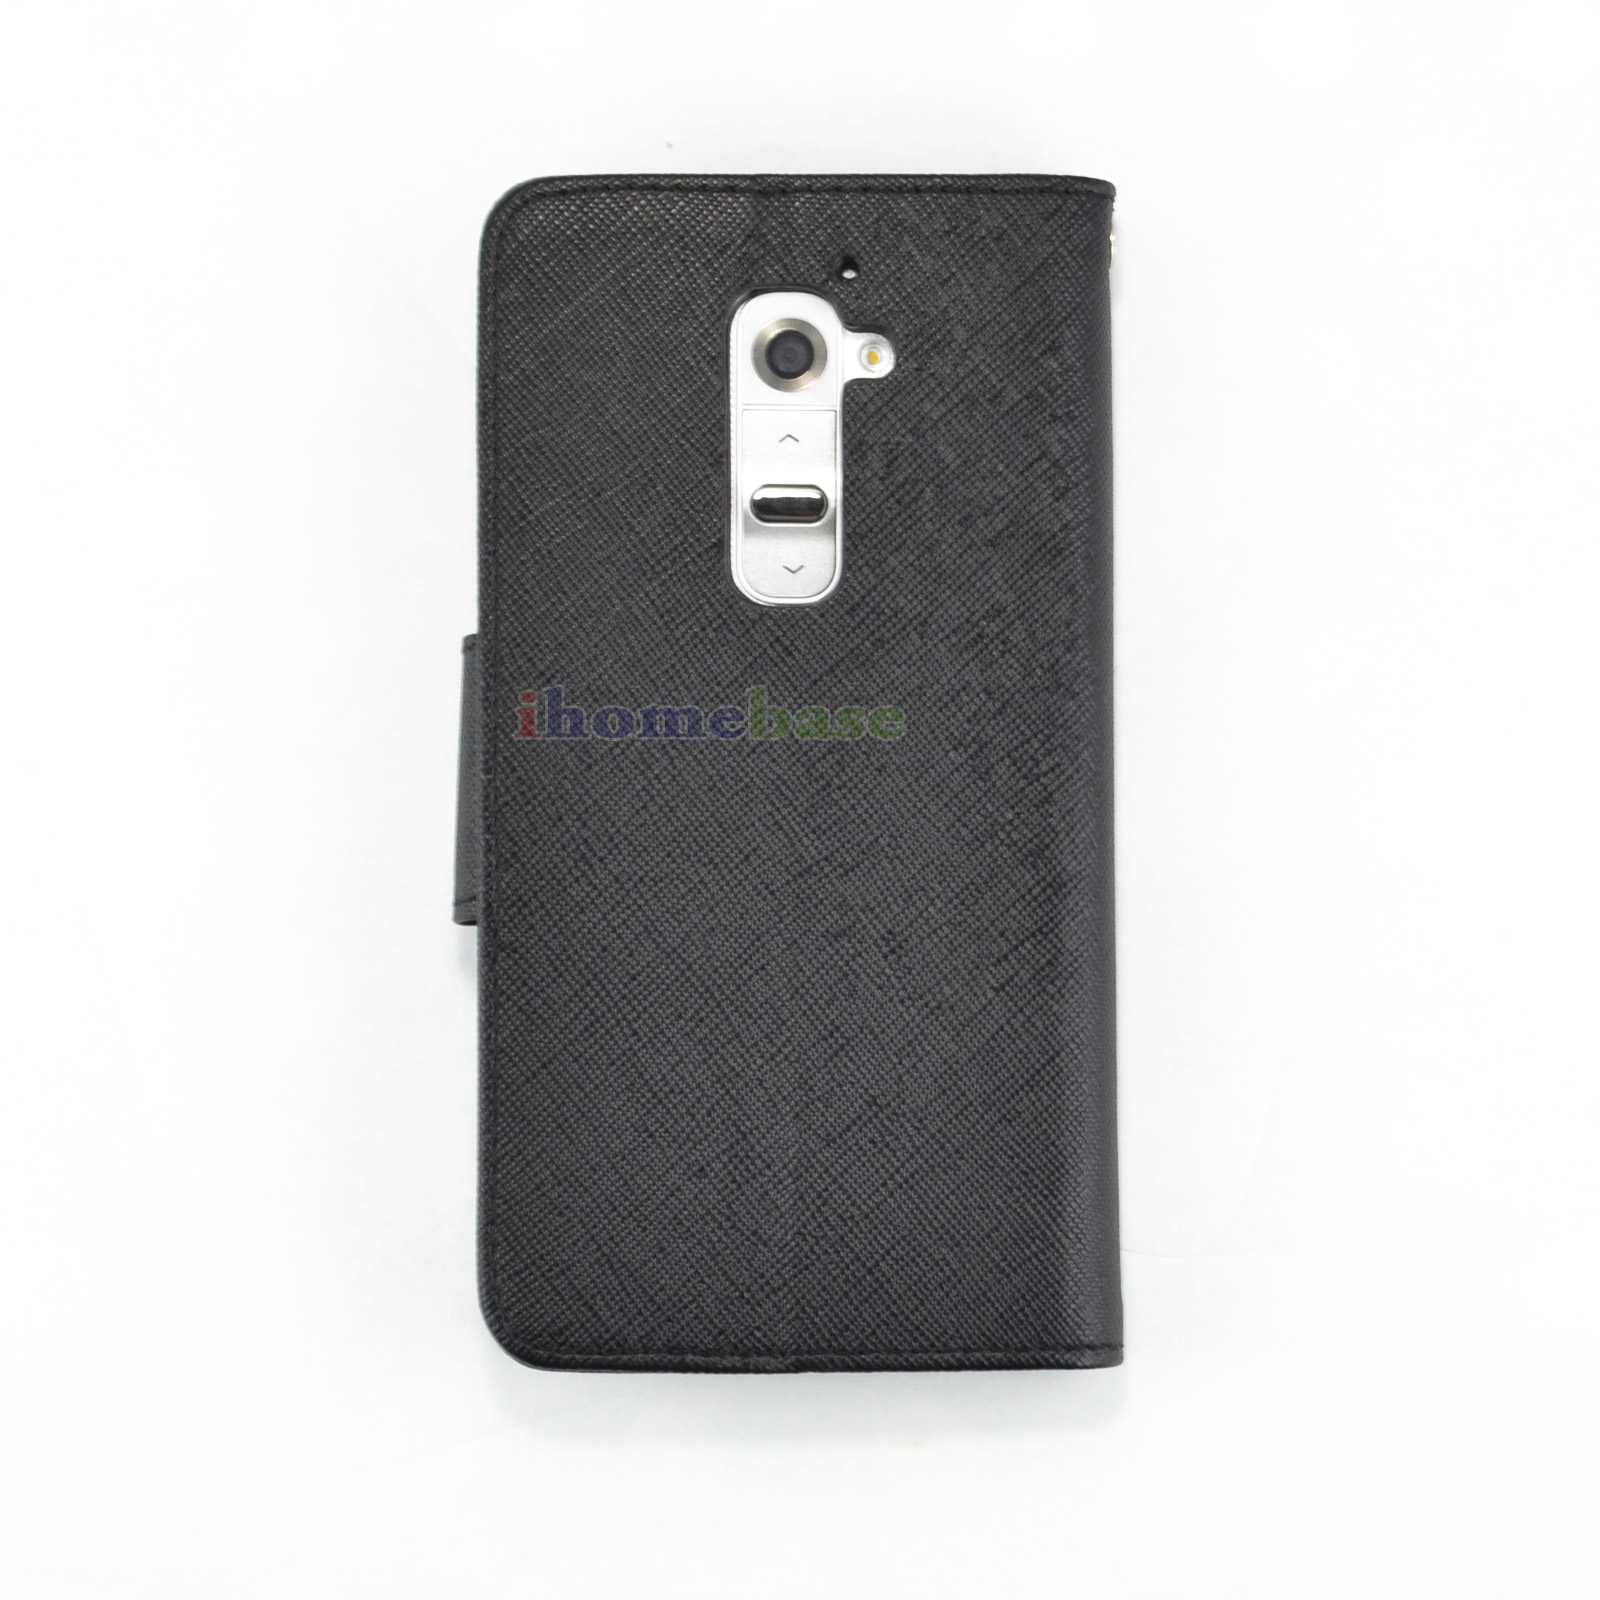 Luxury Magnetic Wallet PU Leather Credit Card Holder Flip Case Cover for LG G2